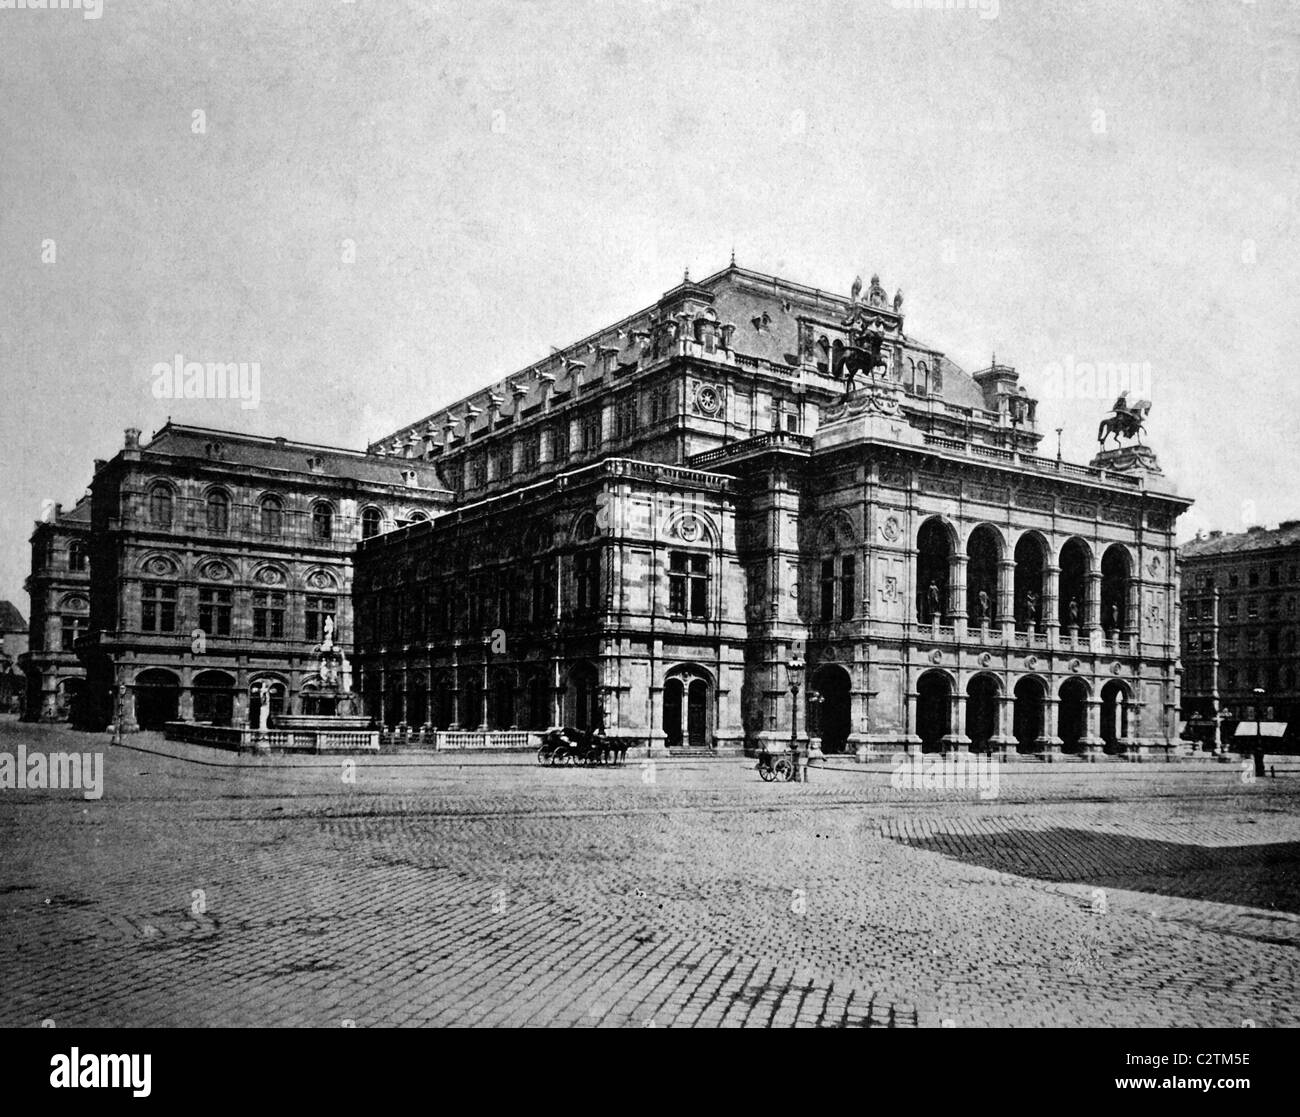 Early autotype of the Opera House in Vienna, Austria, historical photo, 1884 - Stock Image